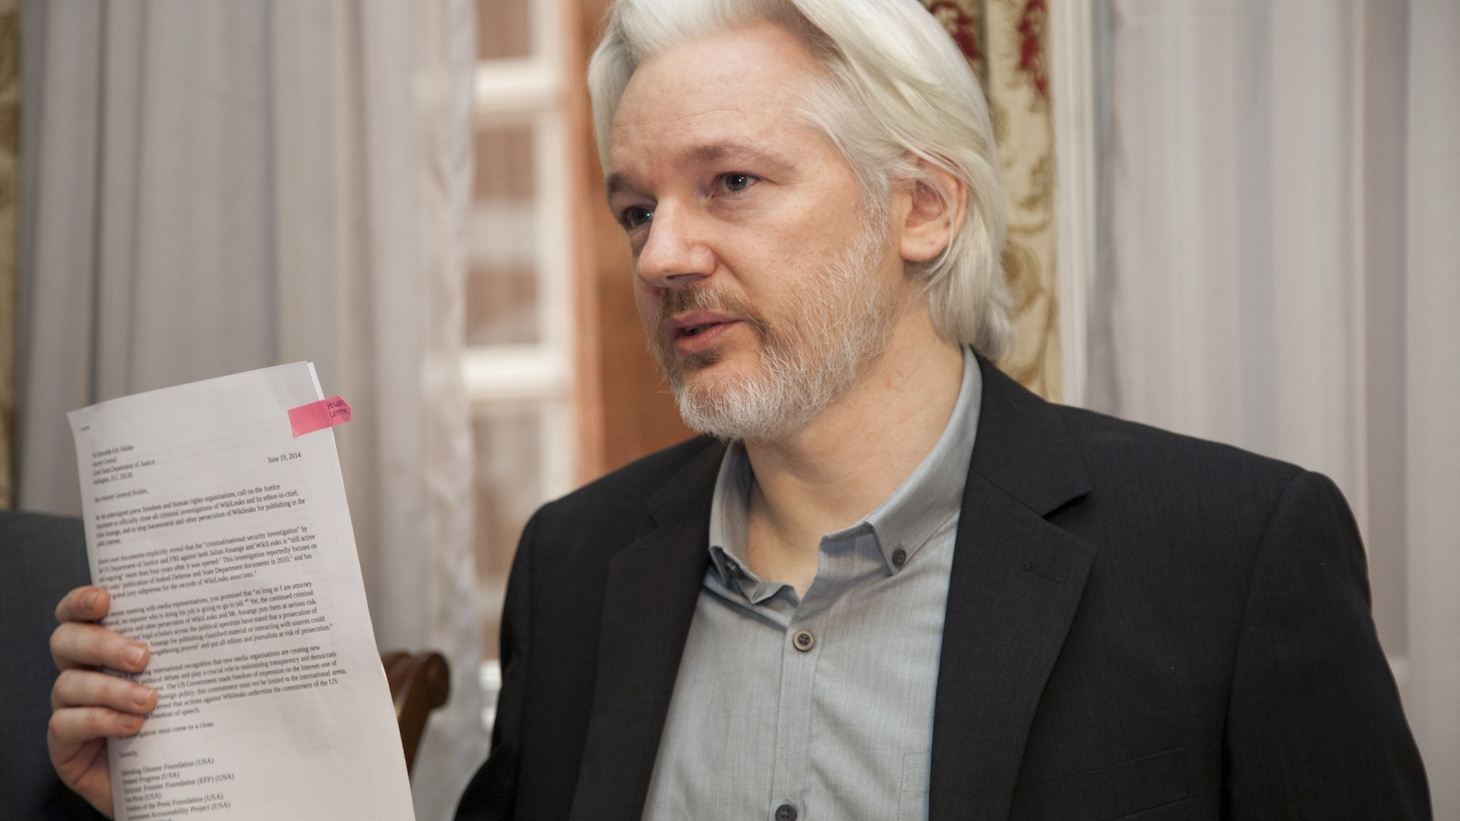 Juilan Assange at the Ecuadorian embassy.